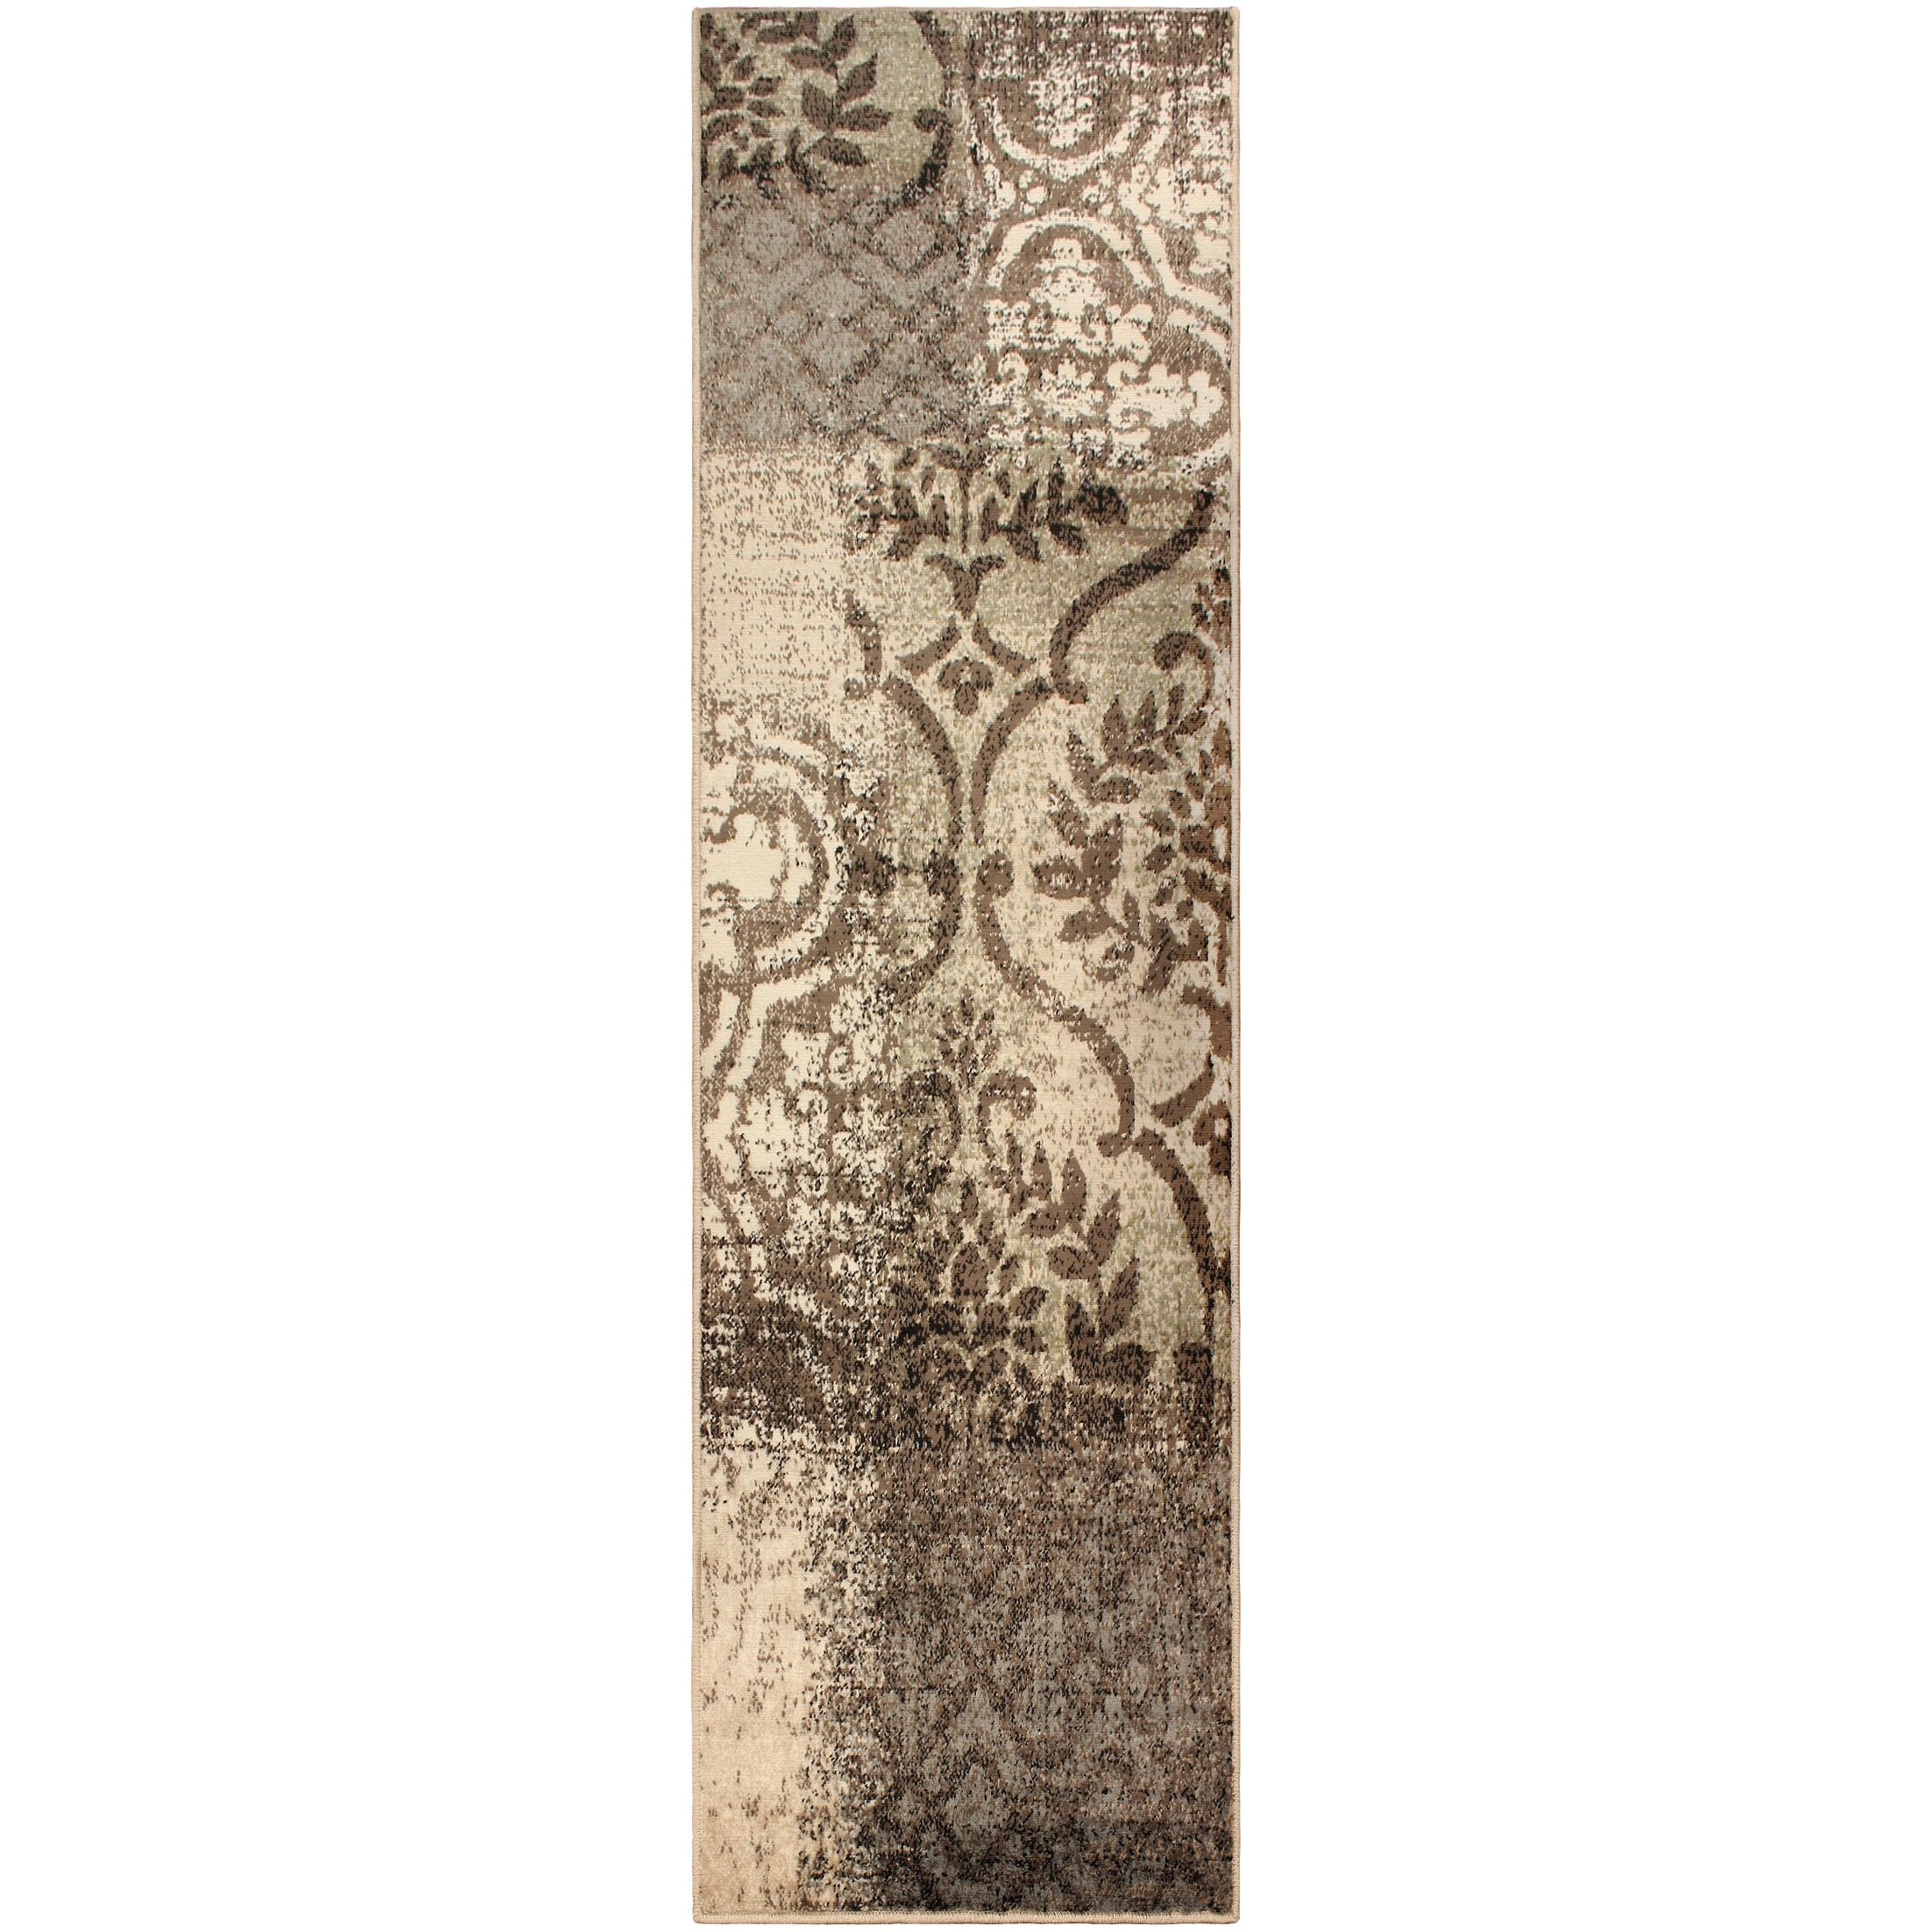 Anchor your ensemble in chic style with this lovely rug. Taking inspiration from both classic and contemporary designs, it showcases an eye-catching pattern with overlapping trellis and Damask detailing. More than just stylish, this rug is crafted fro...